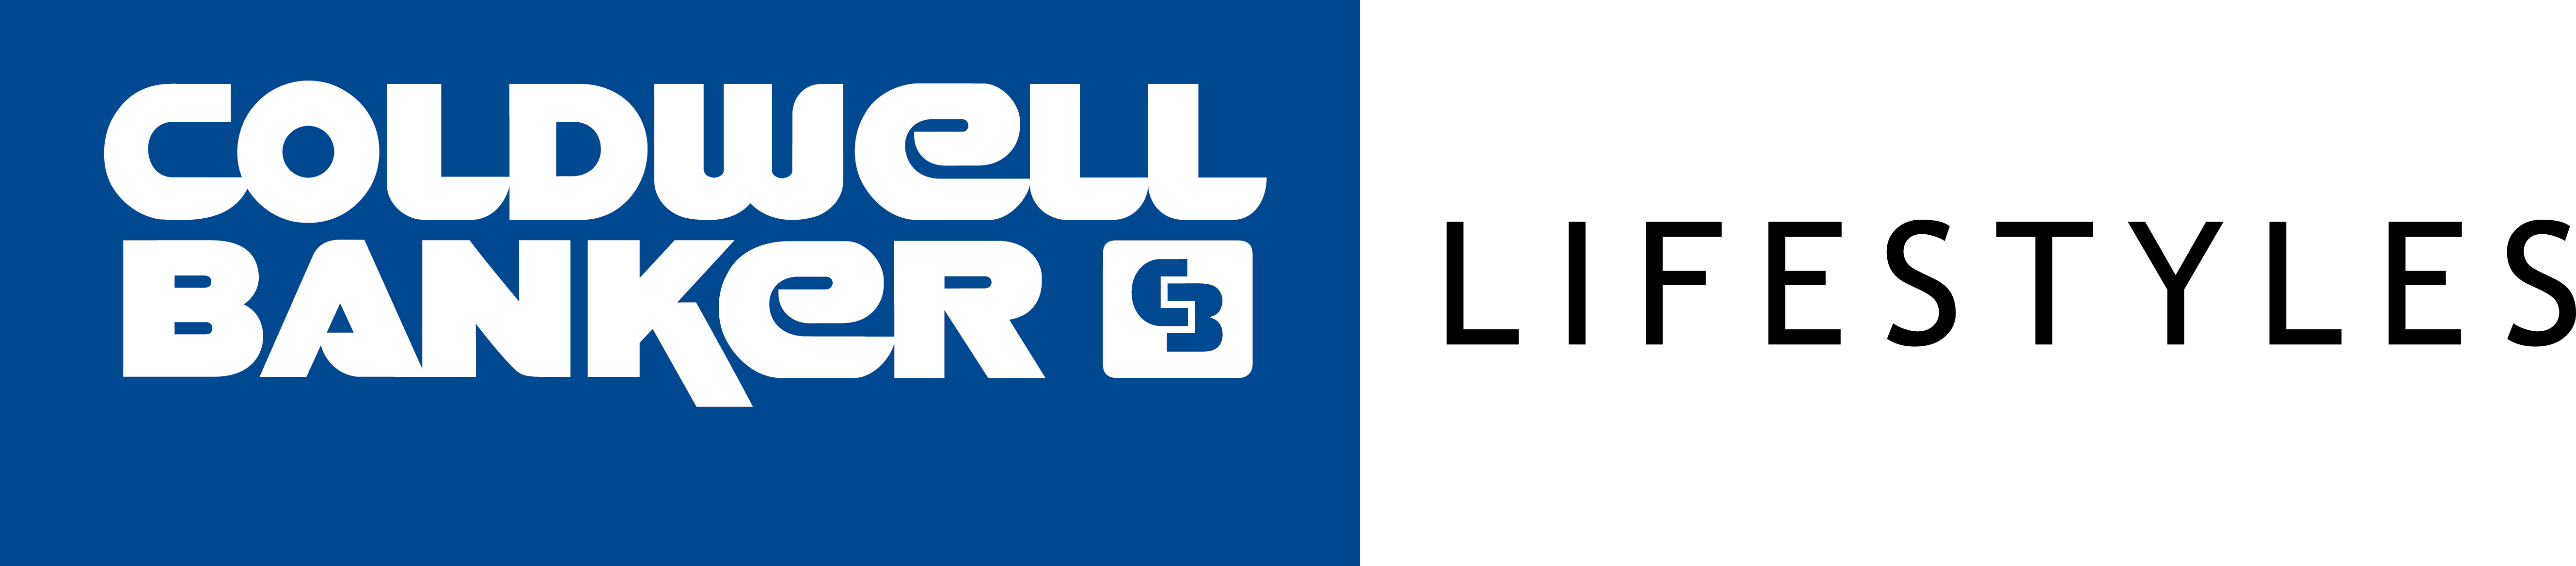 coldwell banker lifestyles png logo #5465